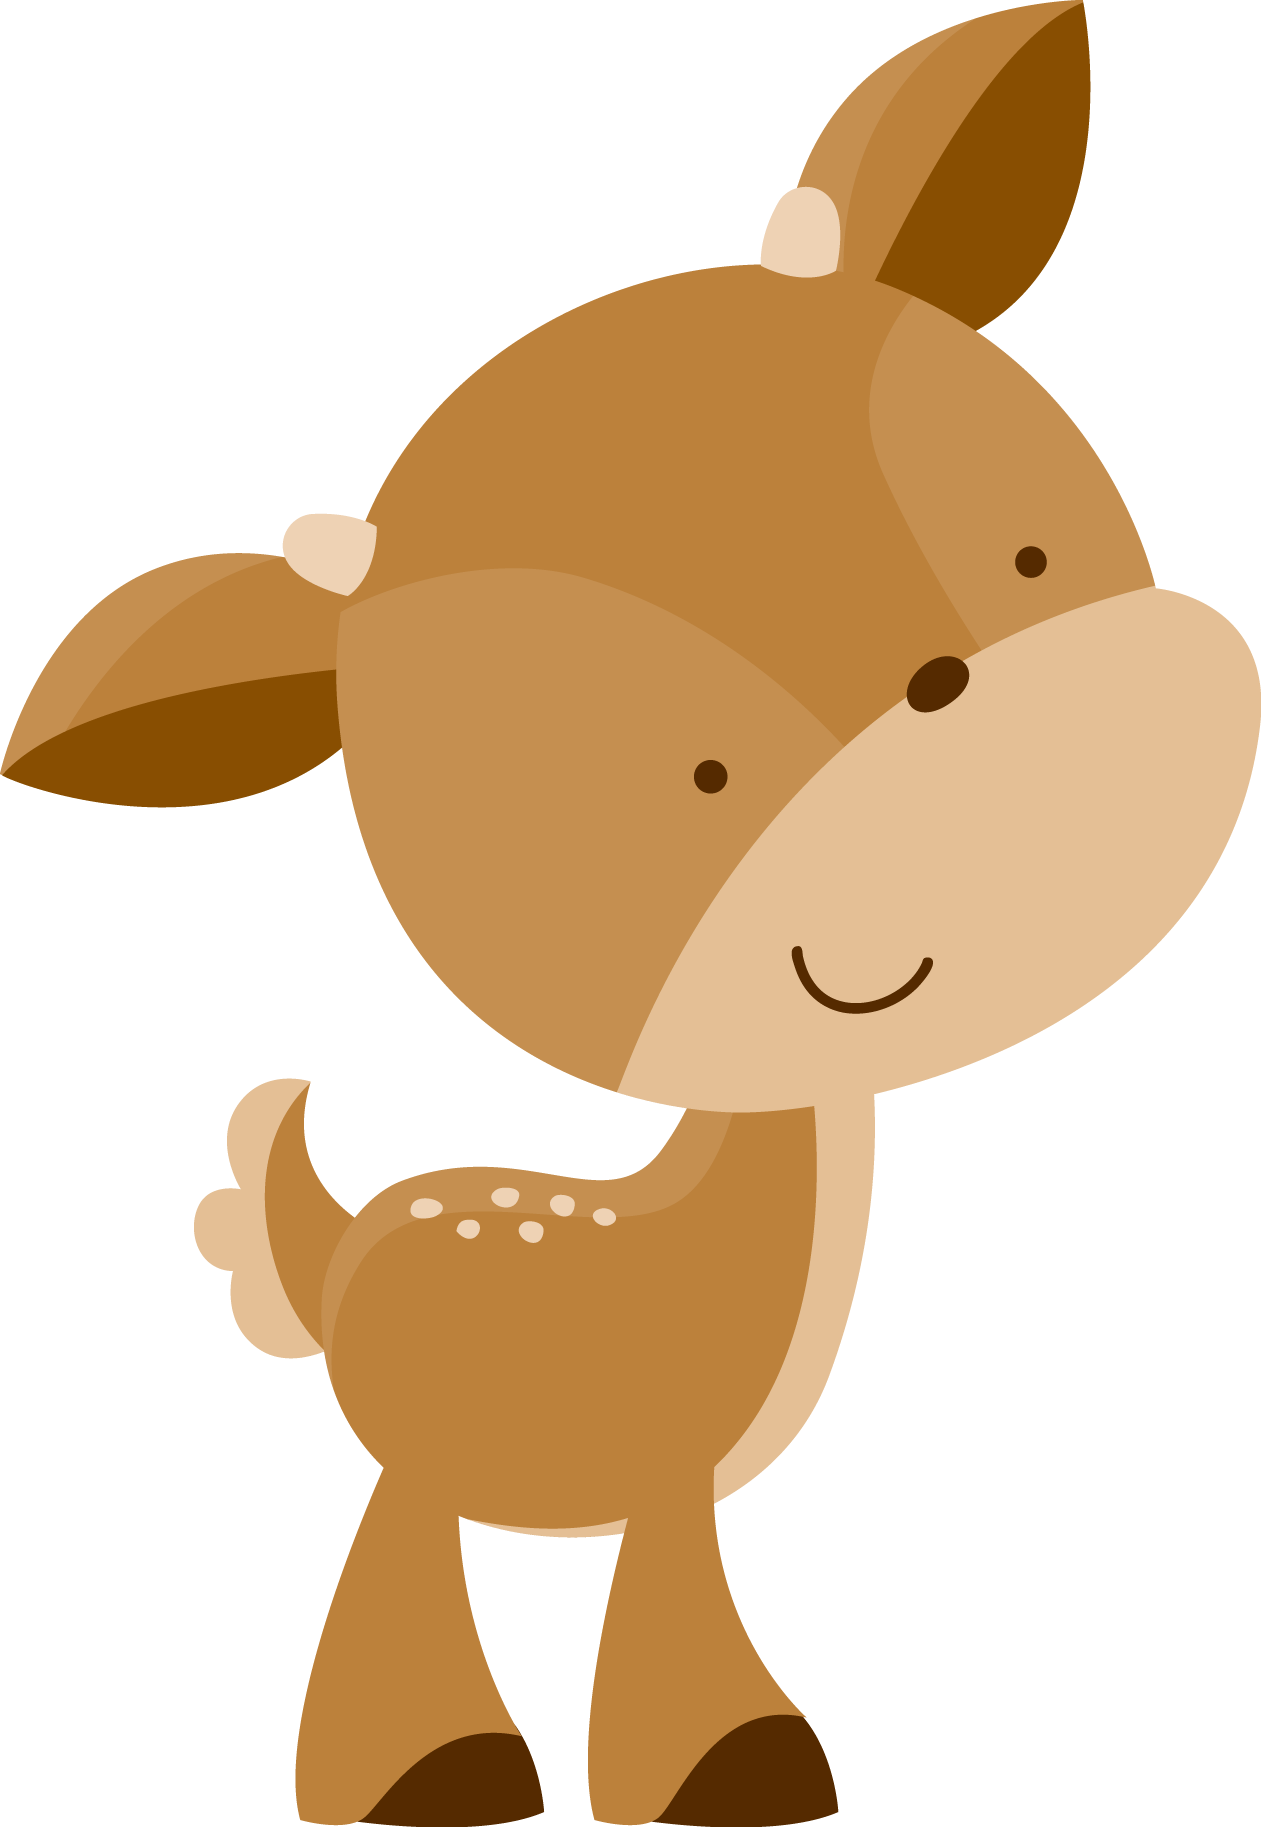 Baby animal clipart png. Zwd tree deer minus